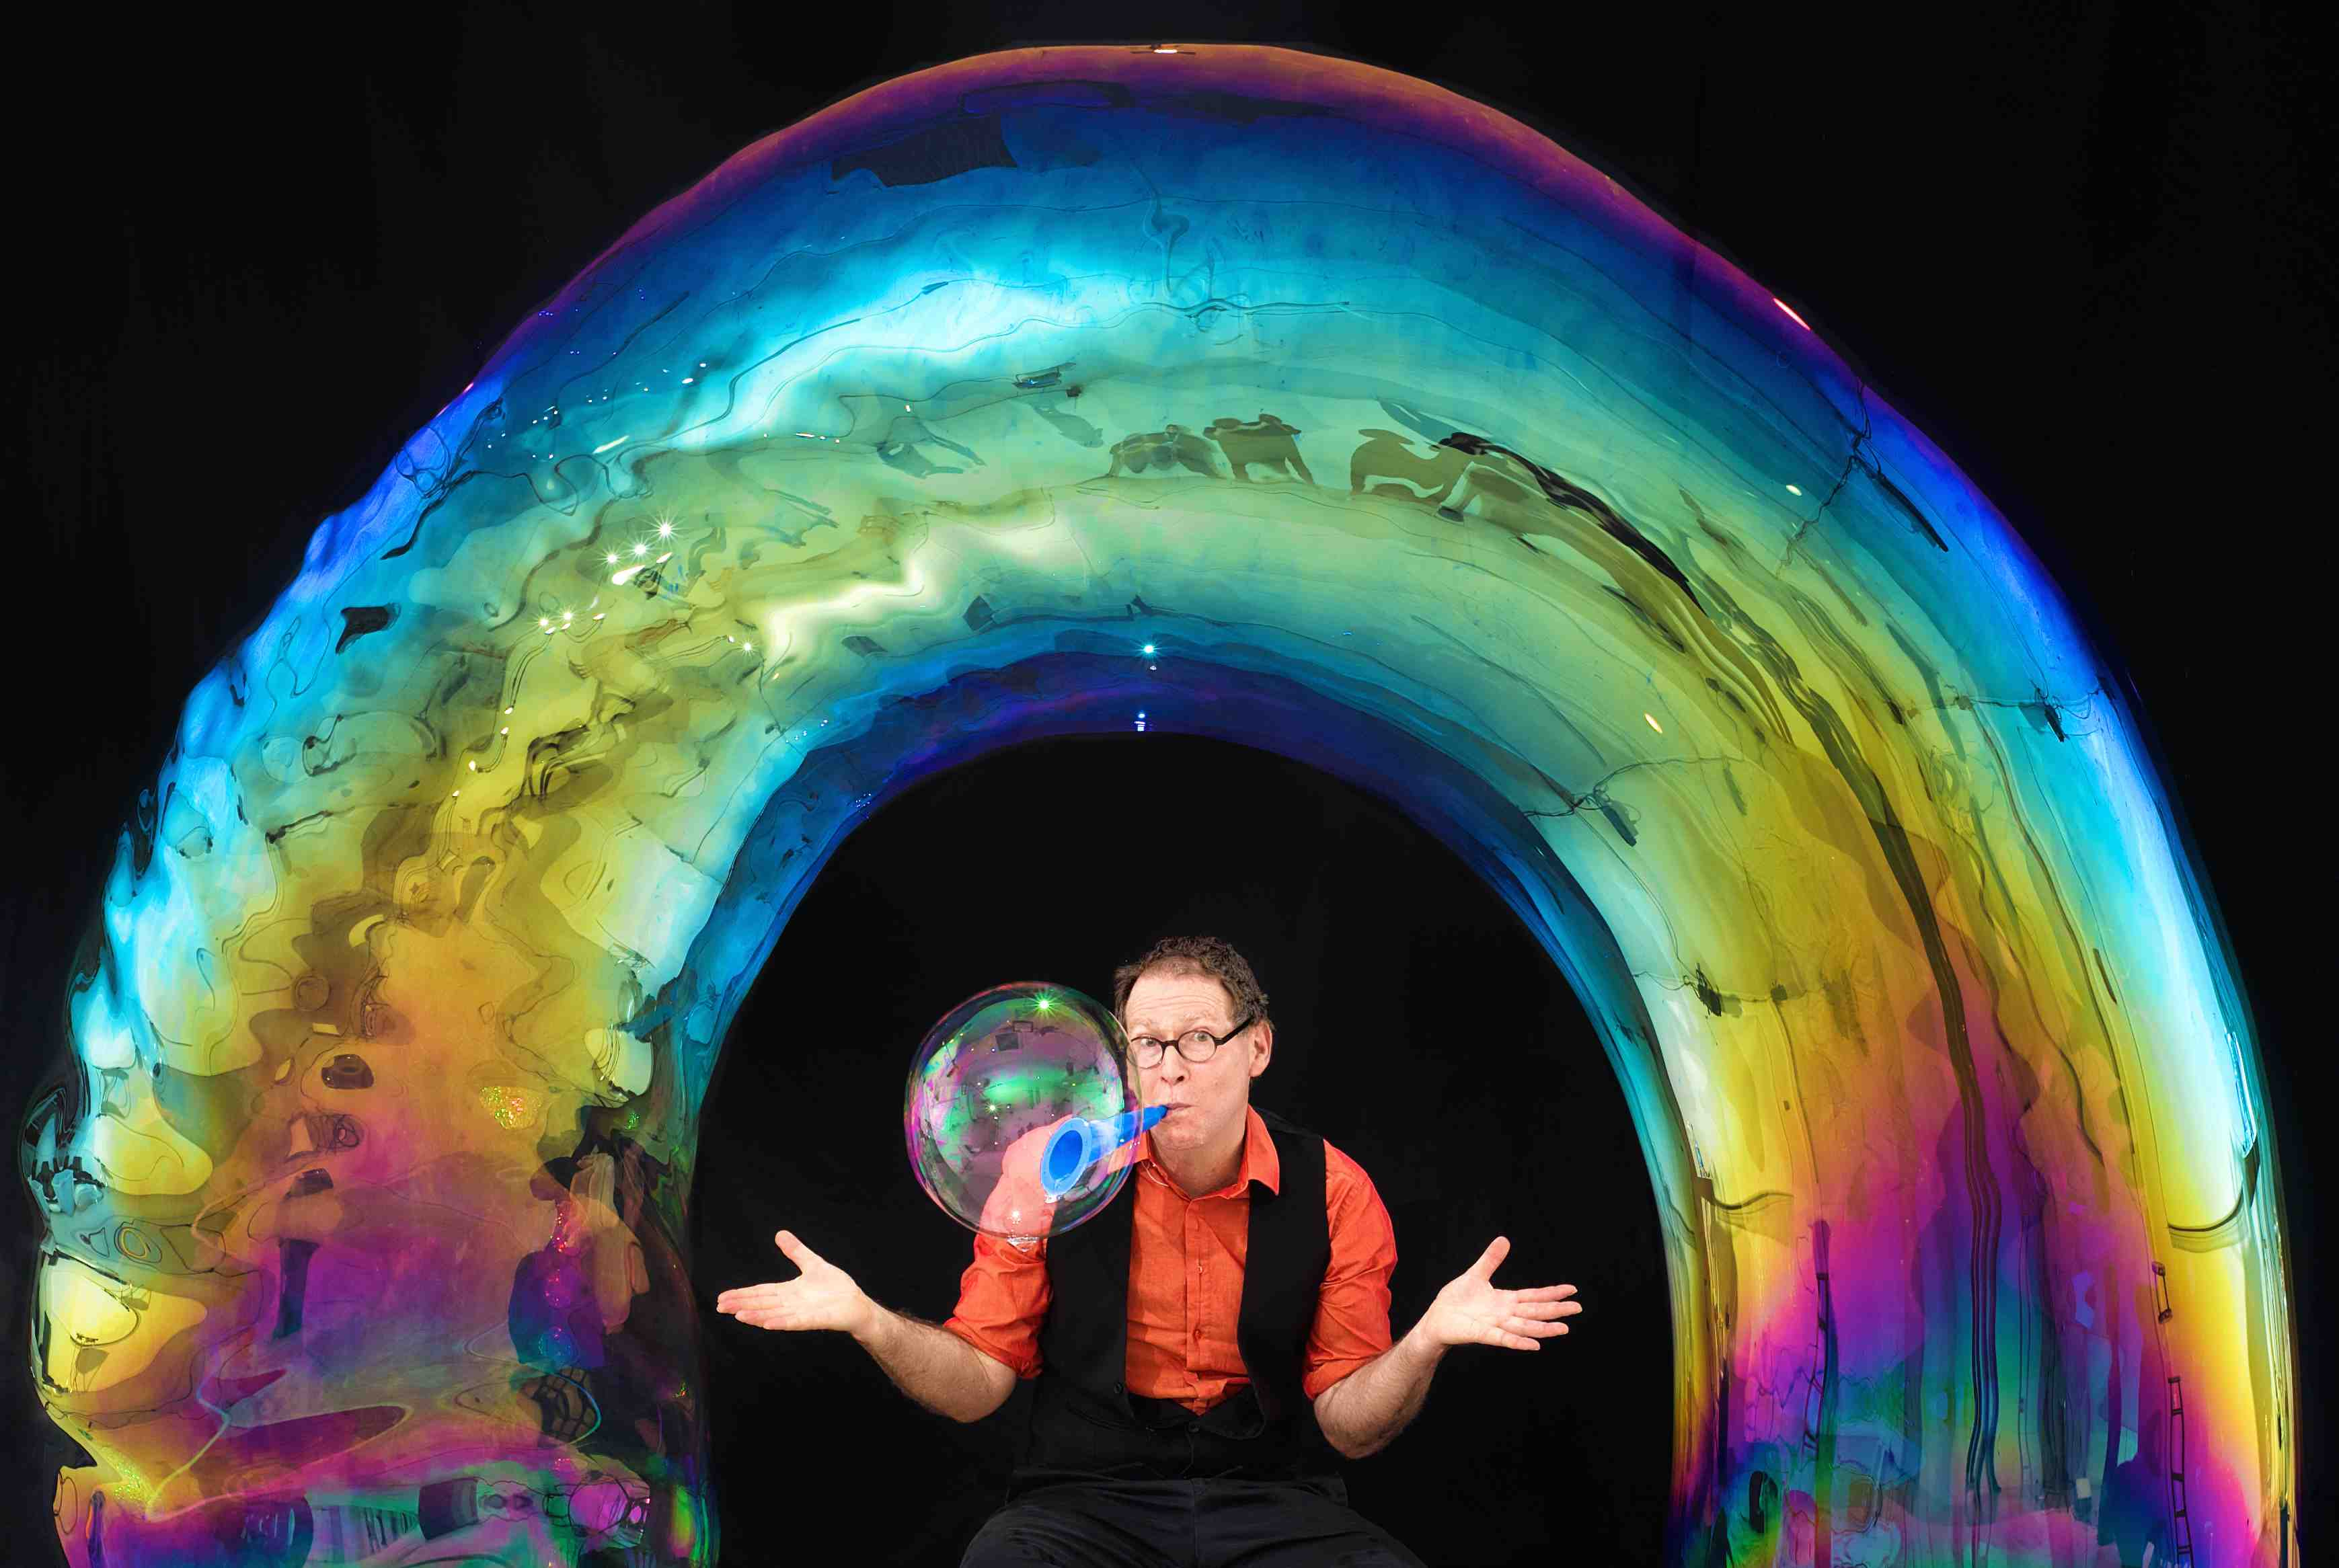 The Amazing Bubble Man has been thrilling audiences around the world for nearly 30 years with the art, magic, science and fun of bubbles. An Edinburgh Fringe favorite, he has sold out every year for the last seven years. The Amazing Bubble Man (aka Louis Pearl) explores the breath-taking dynamics of bubbles, combining comedy and artistry with audience participation and enough spellbinding bubble tricks to keep everyone mesmerized. From square bubbles, bubbles inside bubbles, fog-filled bubbles, giant bubbles, bubble volcanoes, tornados and trampolines to people inside bubbles, the Amazing Bubble Man conjures shrieks of laughter and gasps of amazement from all ages. The shows will also feature multi instrumentalist Jet Black Pearl accompanying with bubbly music to double your pleasure. www.bubbleguy.com